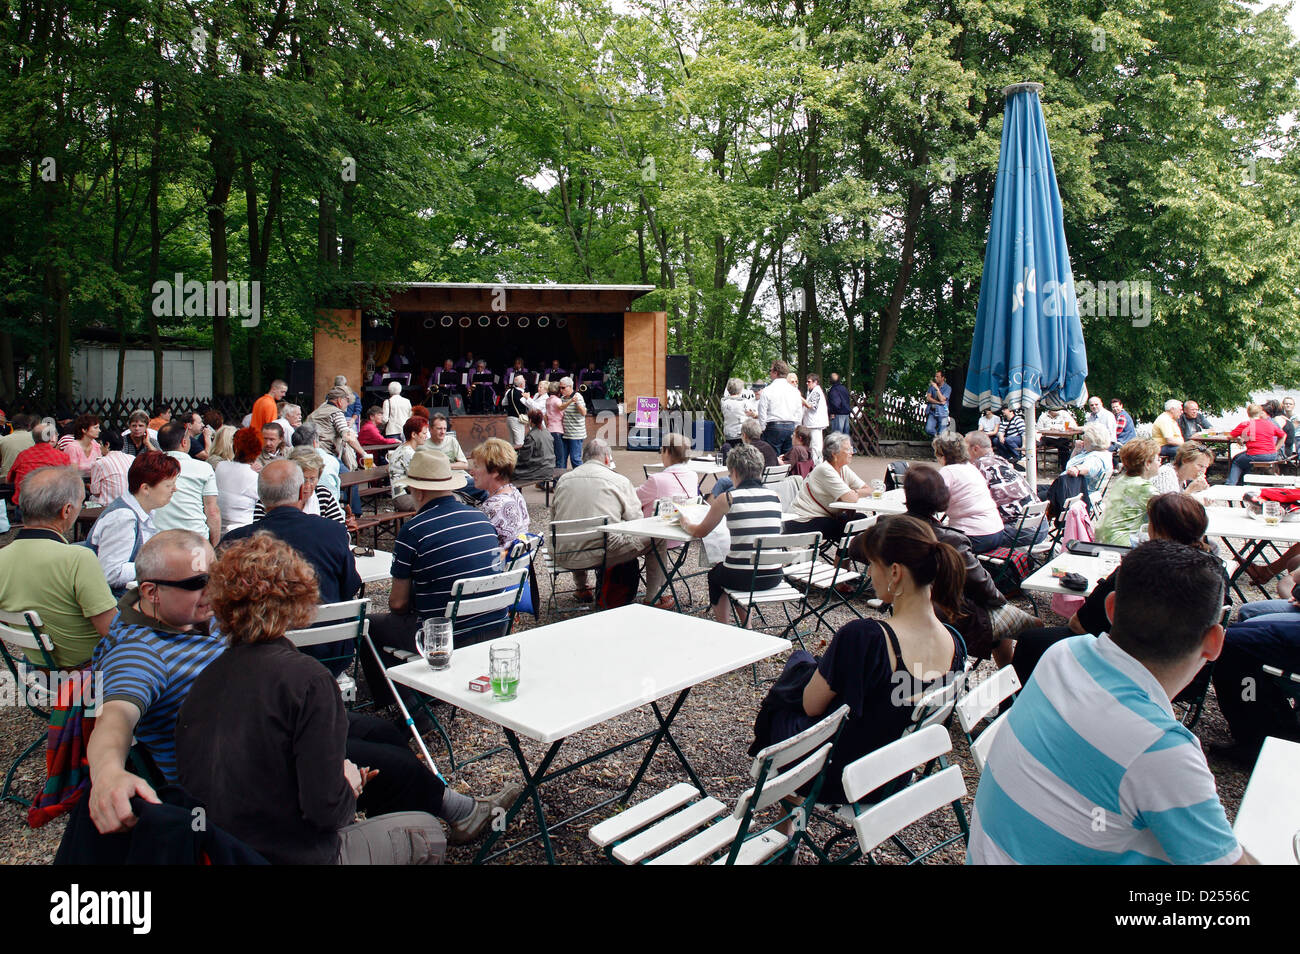 berlin live music restaurant stockfotos berlin live music restaurant bilder alamy. Black Bedroom Furniture Sets. Home Design Ideas